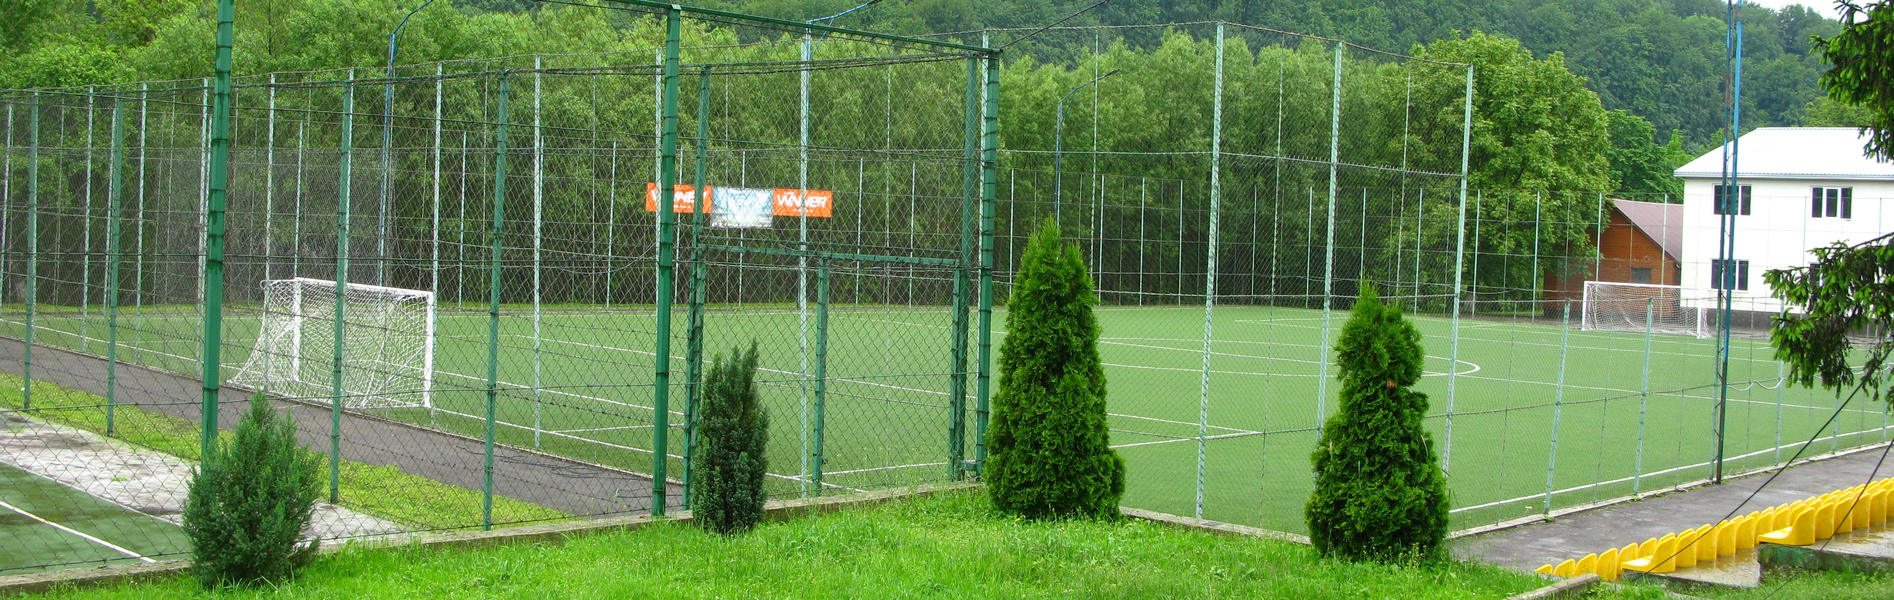 How rural hromada opened sports school - report from Polyanska AH